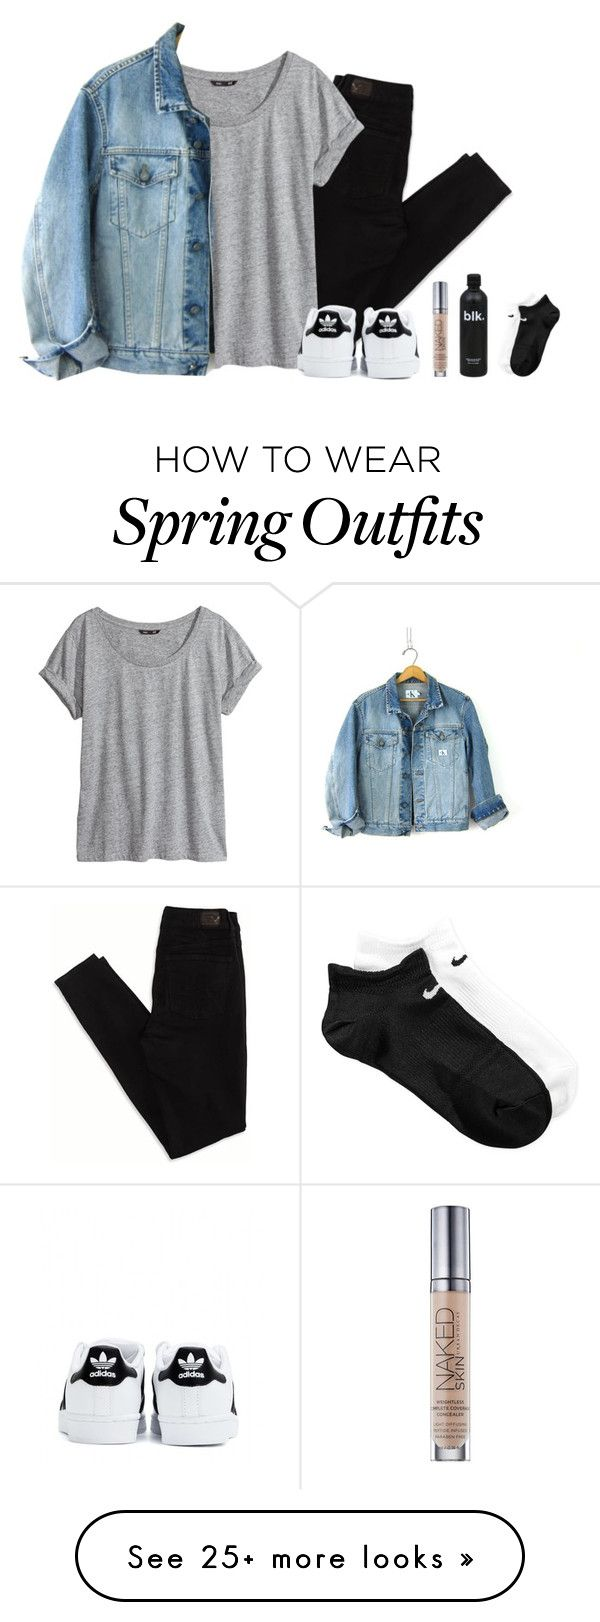 American Eagle vs. Urban Outfitters Essay